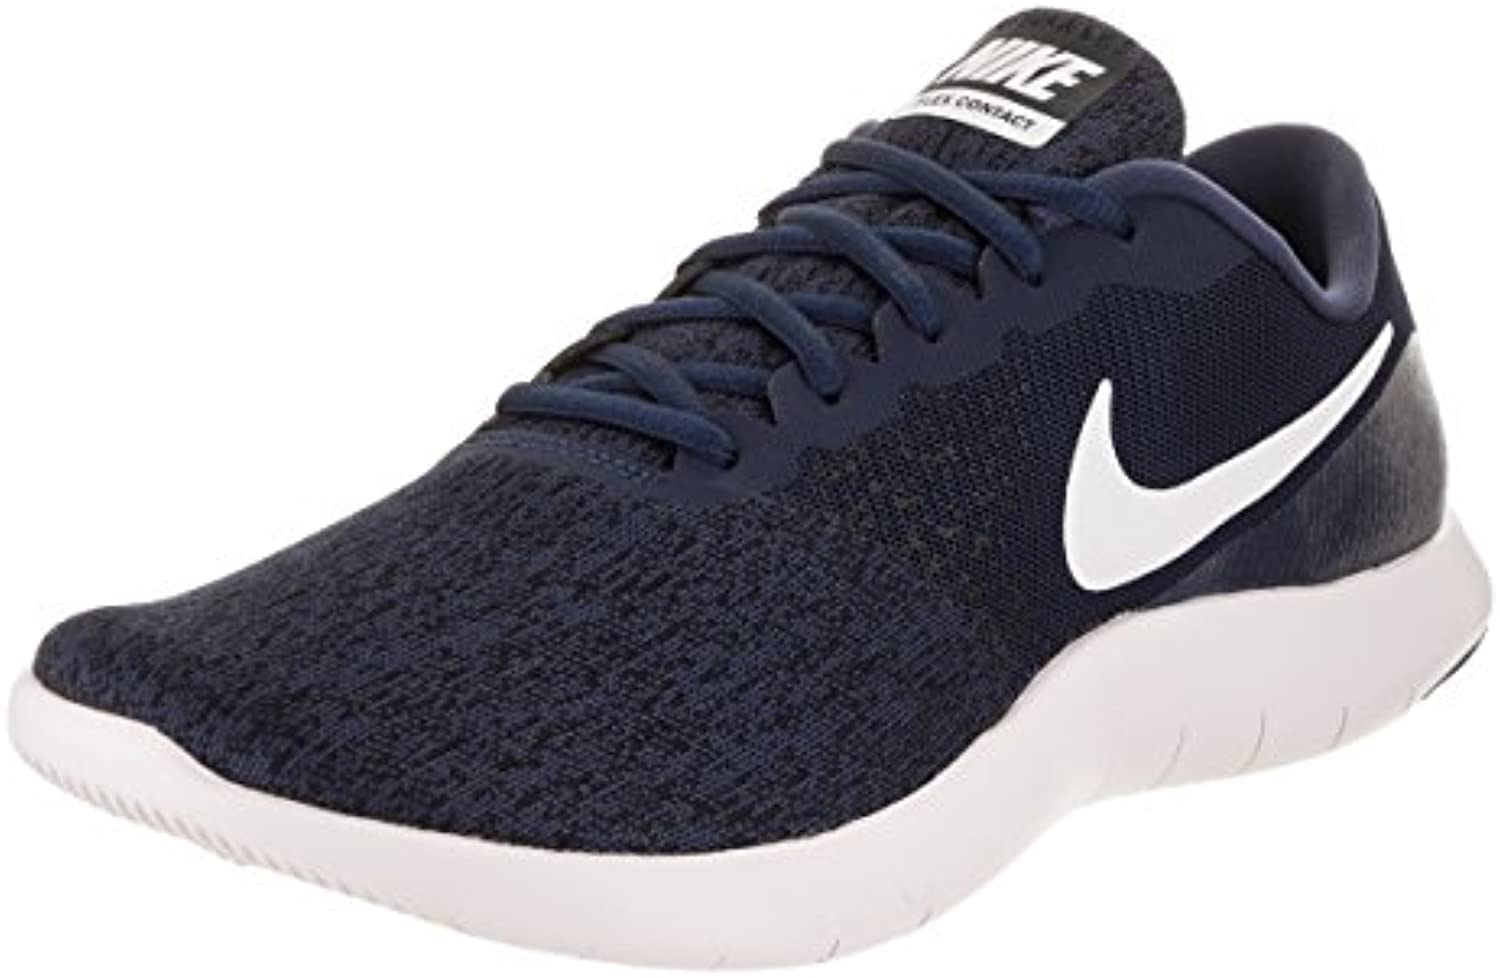 NIKE Men's Flex Contact Midnight/Navy/White/Black Running Shoe 9.5 Men US